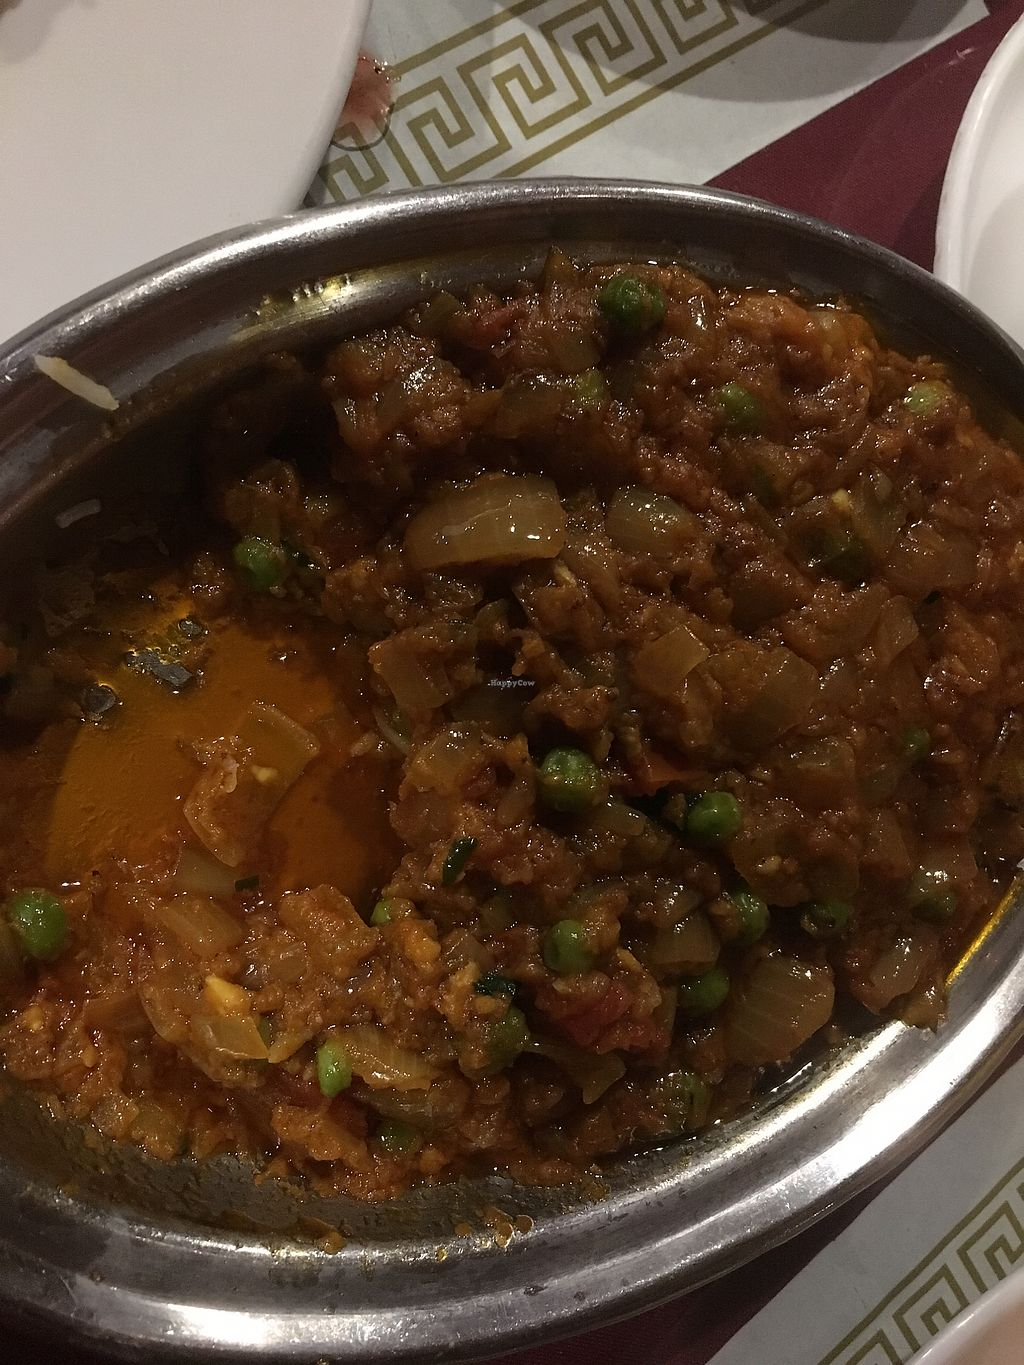 """Photo of Sitar Indian Cuisine  by <a href=""""/members/profile/CColors"""">CColors</a> <br/>Vegan dish <br/> March 11, 2018  - <a href='/contact/abuse/image/51266/369107'>Report</a>"""